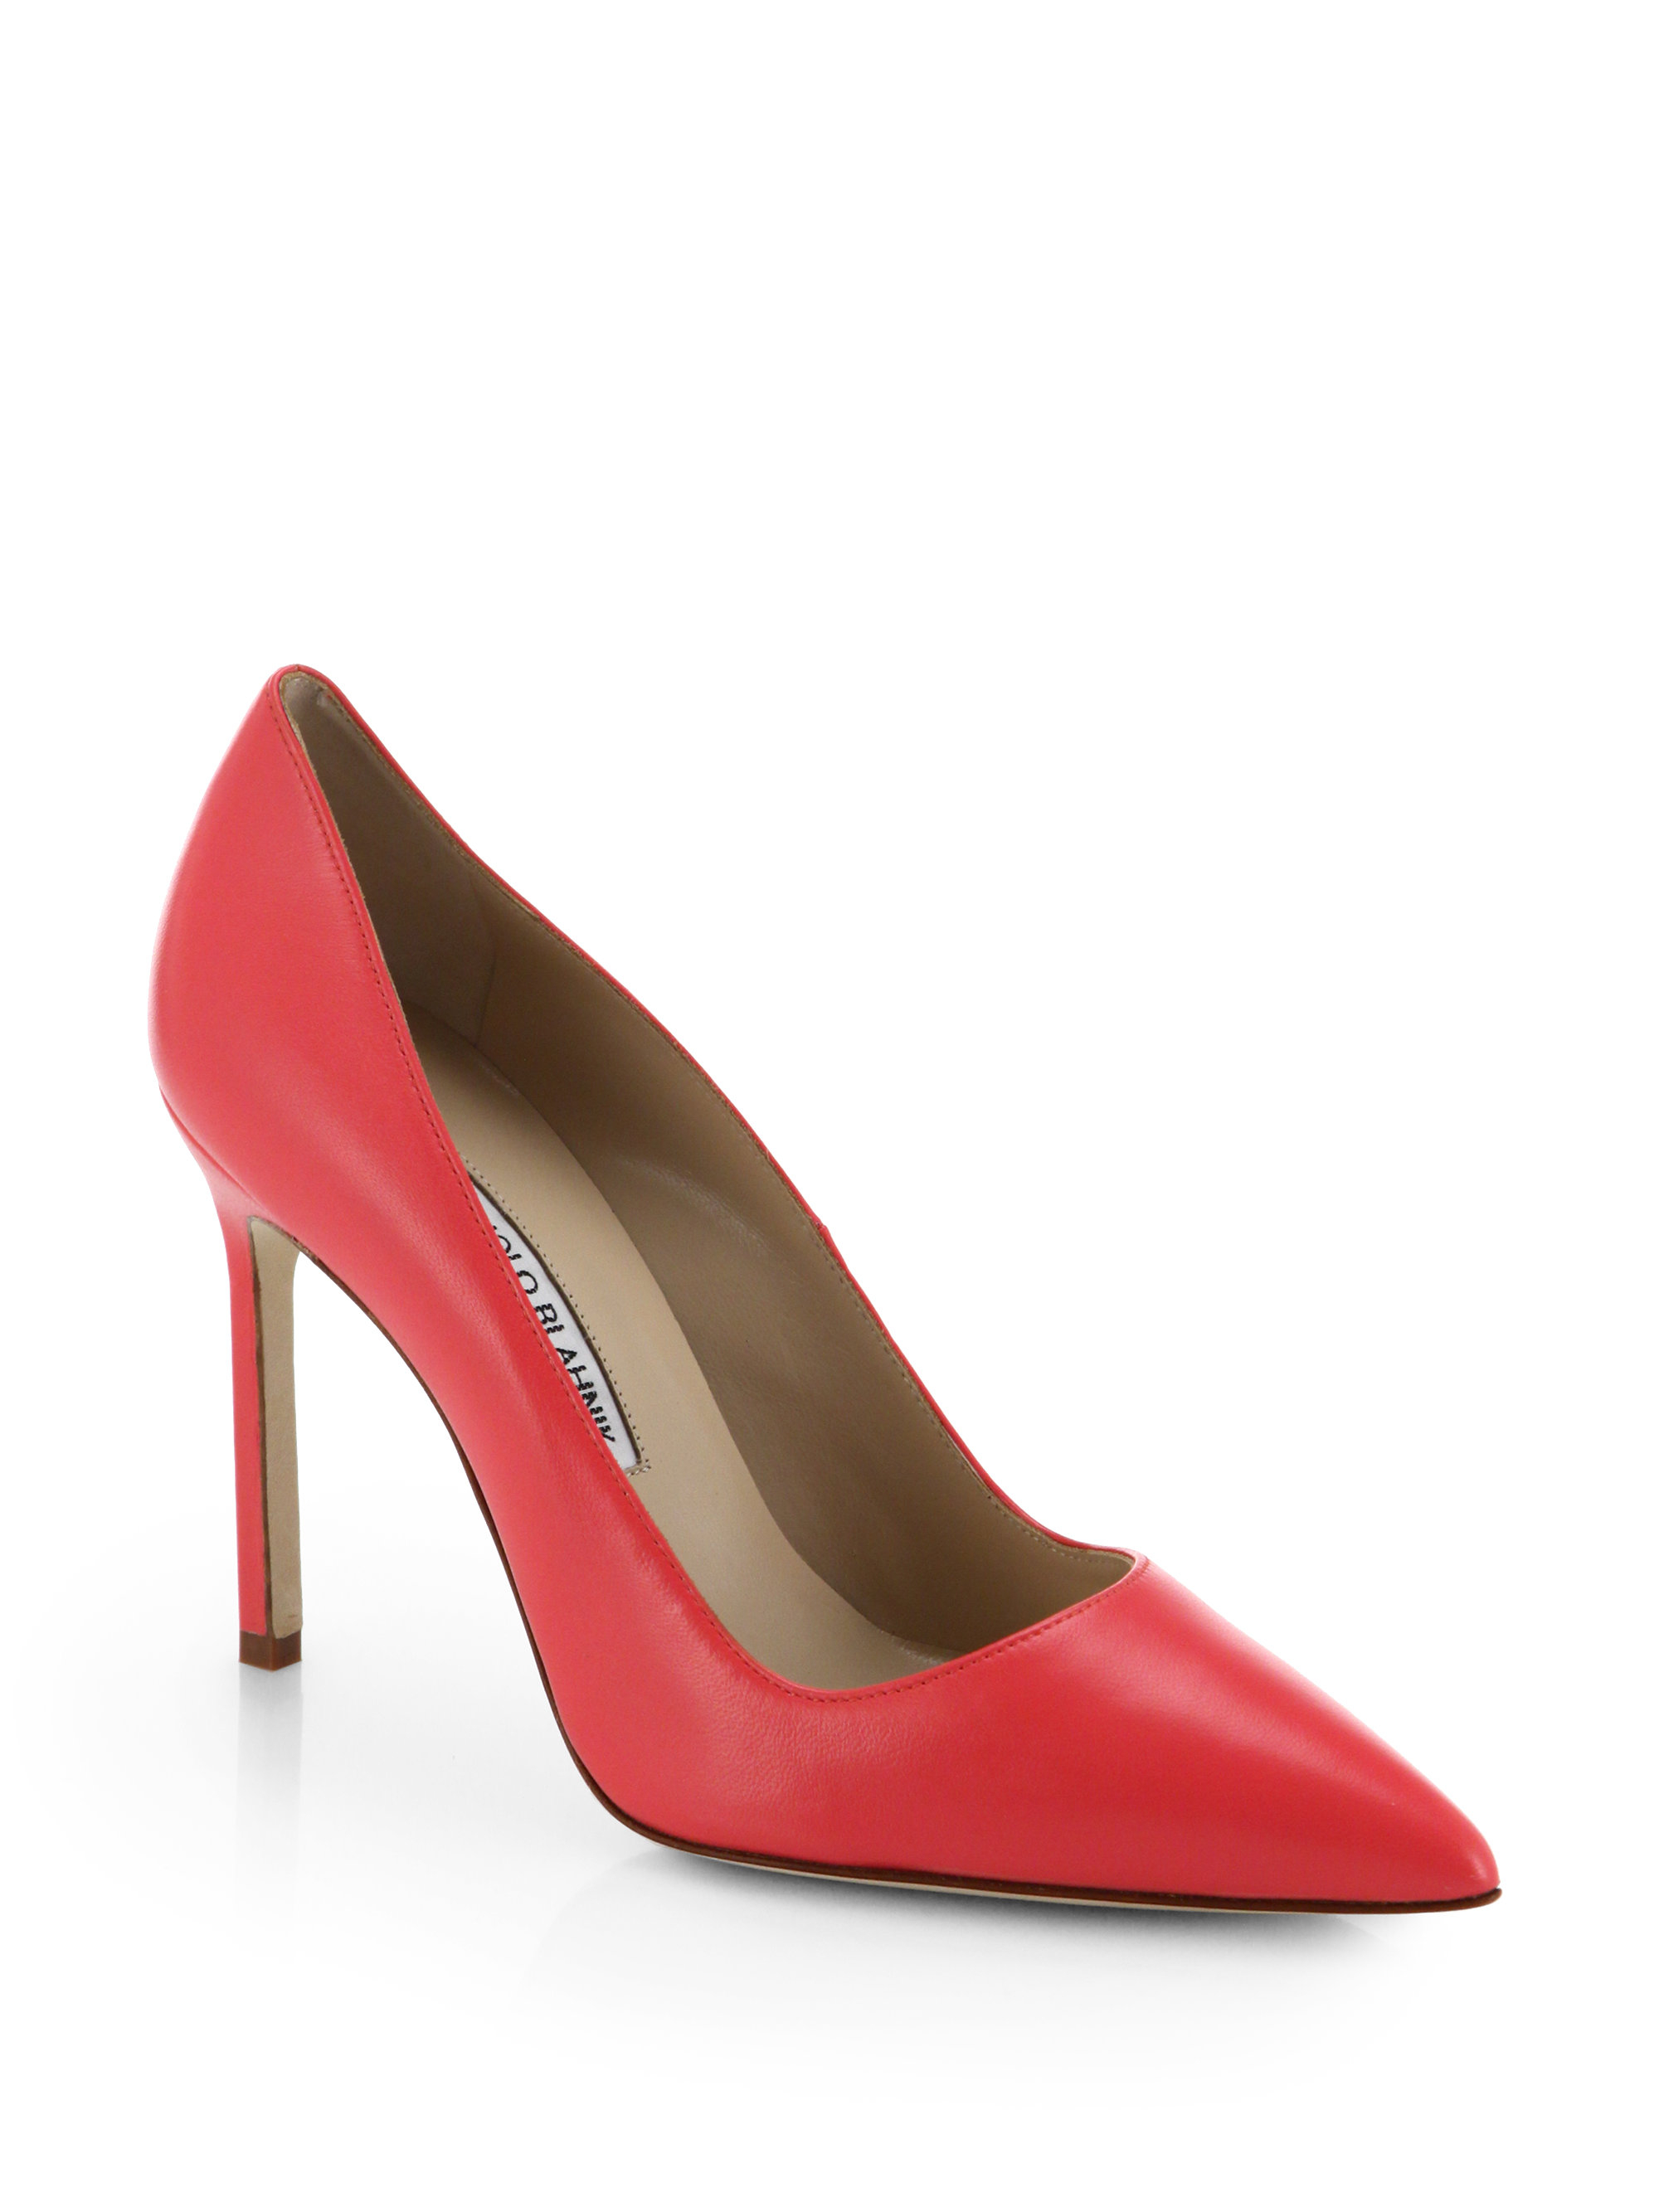 Manolo Blahnik Nappa Leather Point Toe Pumps In Red Lyst